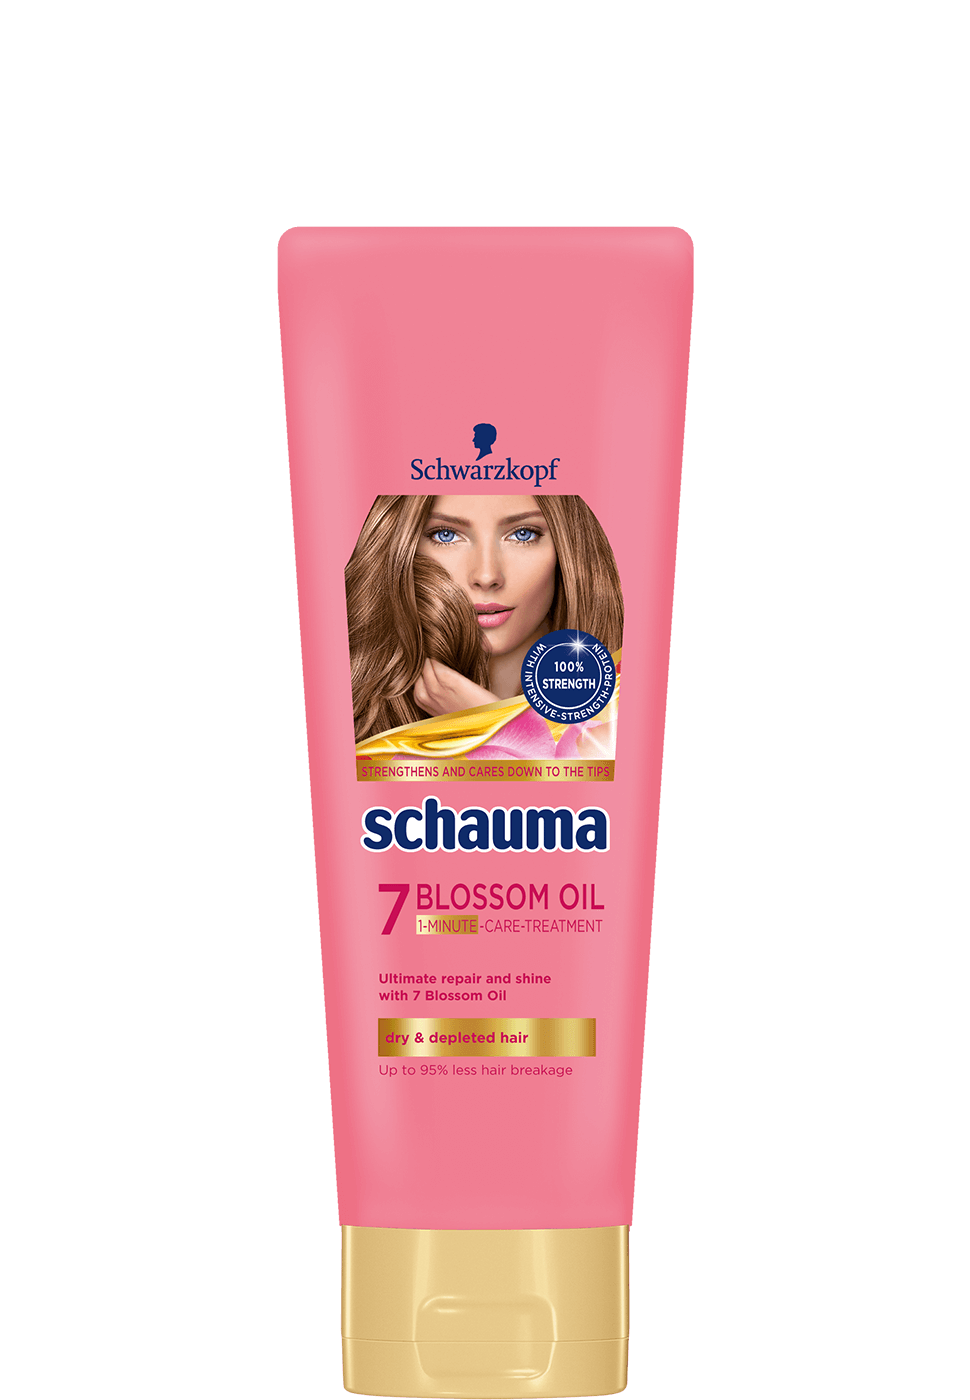 schauma_com_multi_7_blossom_oil_minute_care_treatment_970x1400